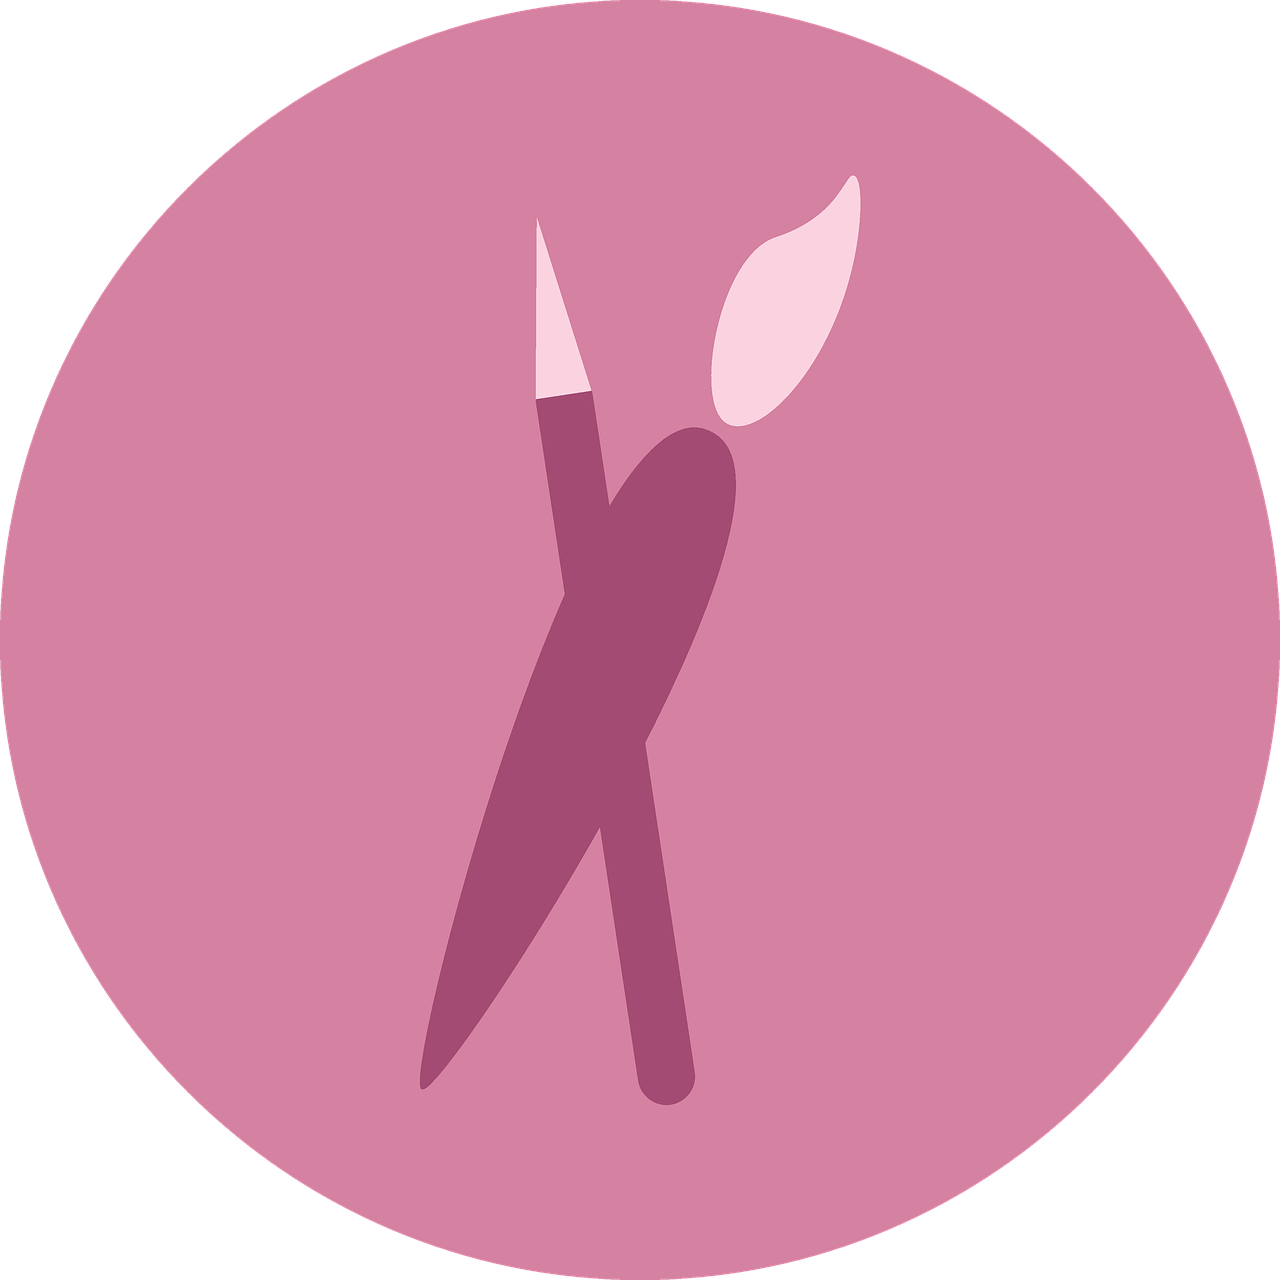 Download Pink Twitch Logo Png Png Image With No Background Pngkey Com